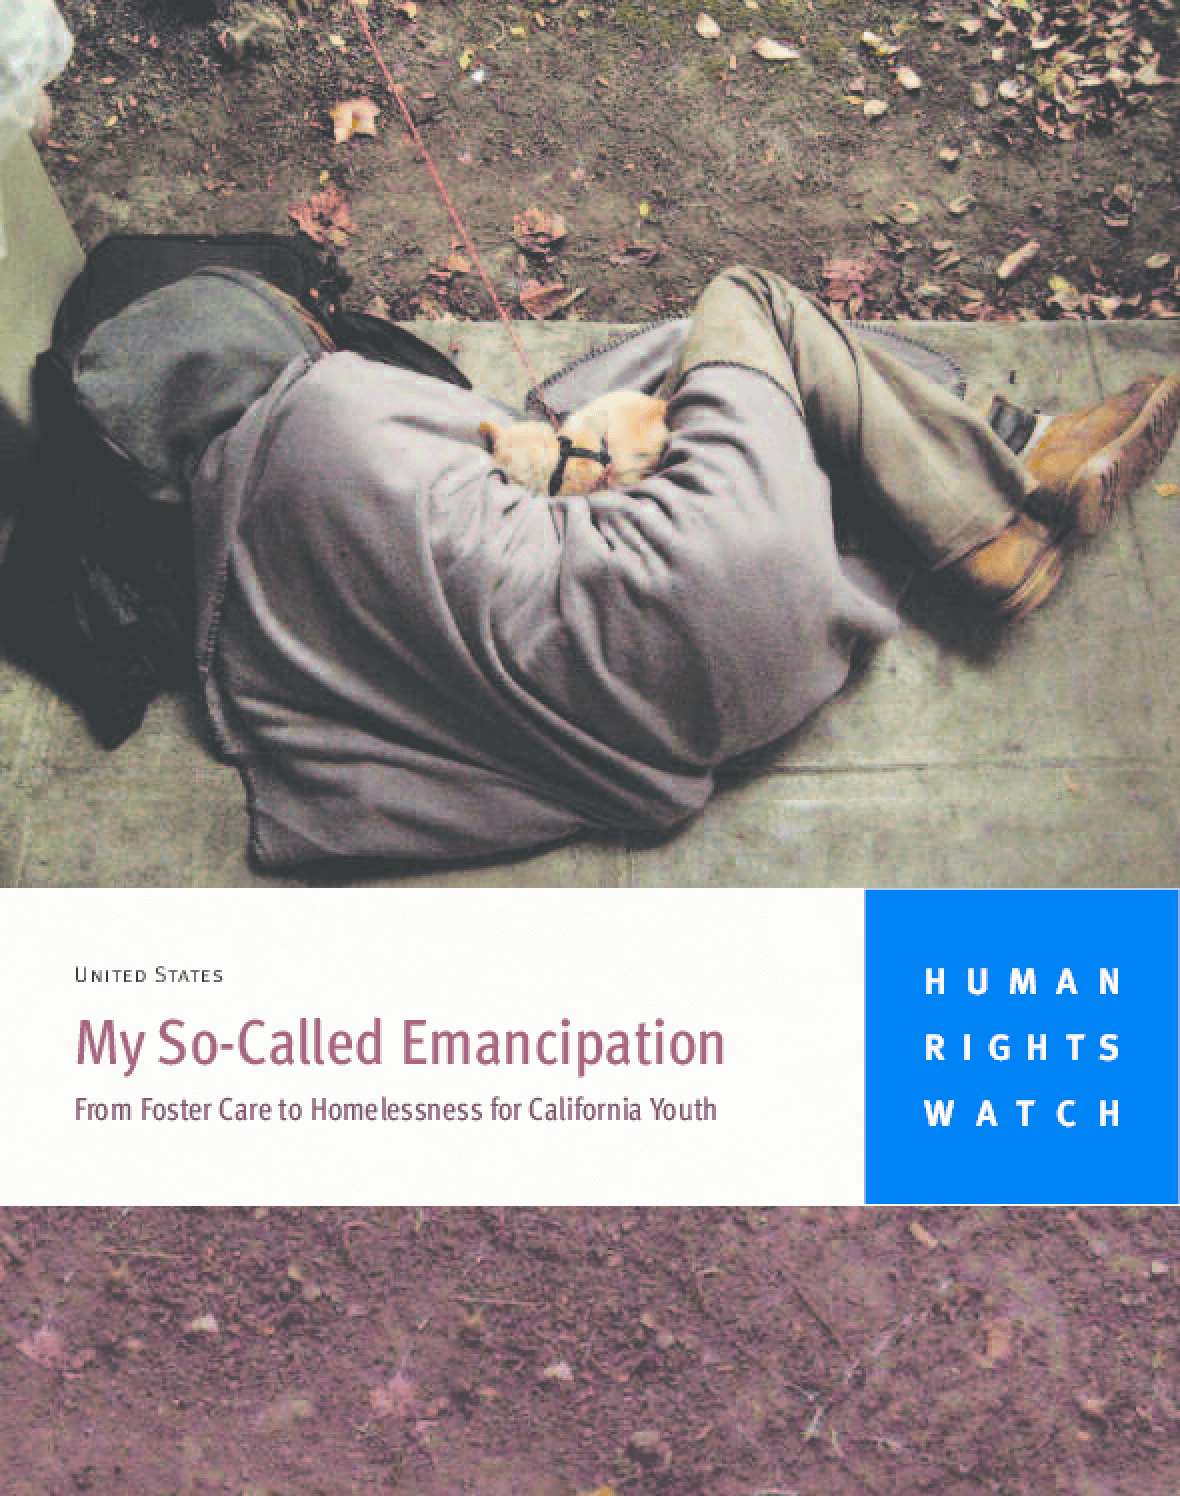 My So-Called Emancipation: From Foster Care to Homelessness for California Youth